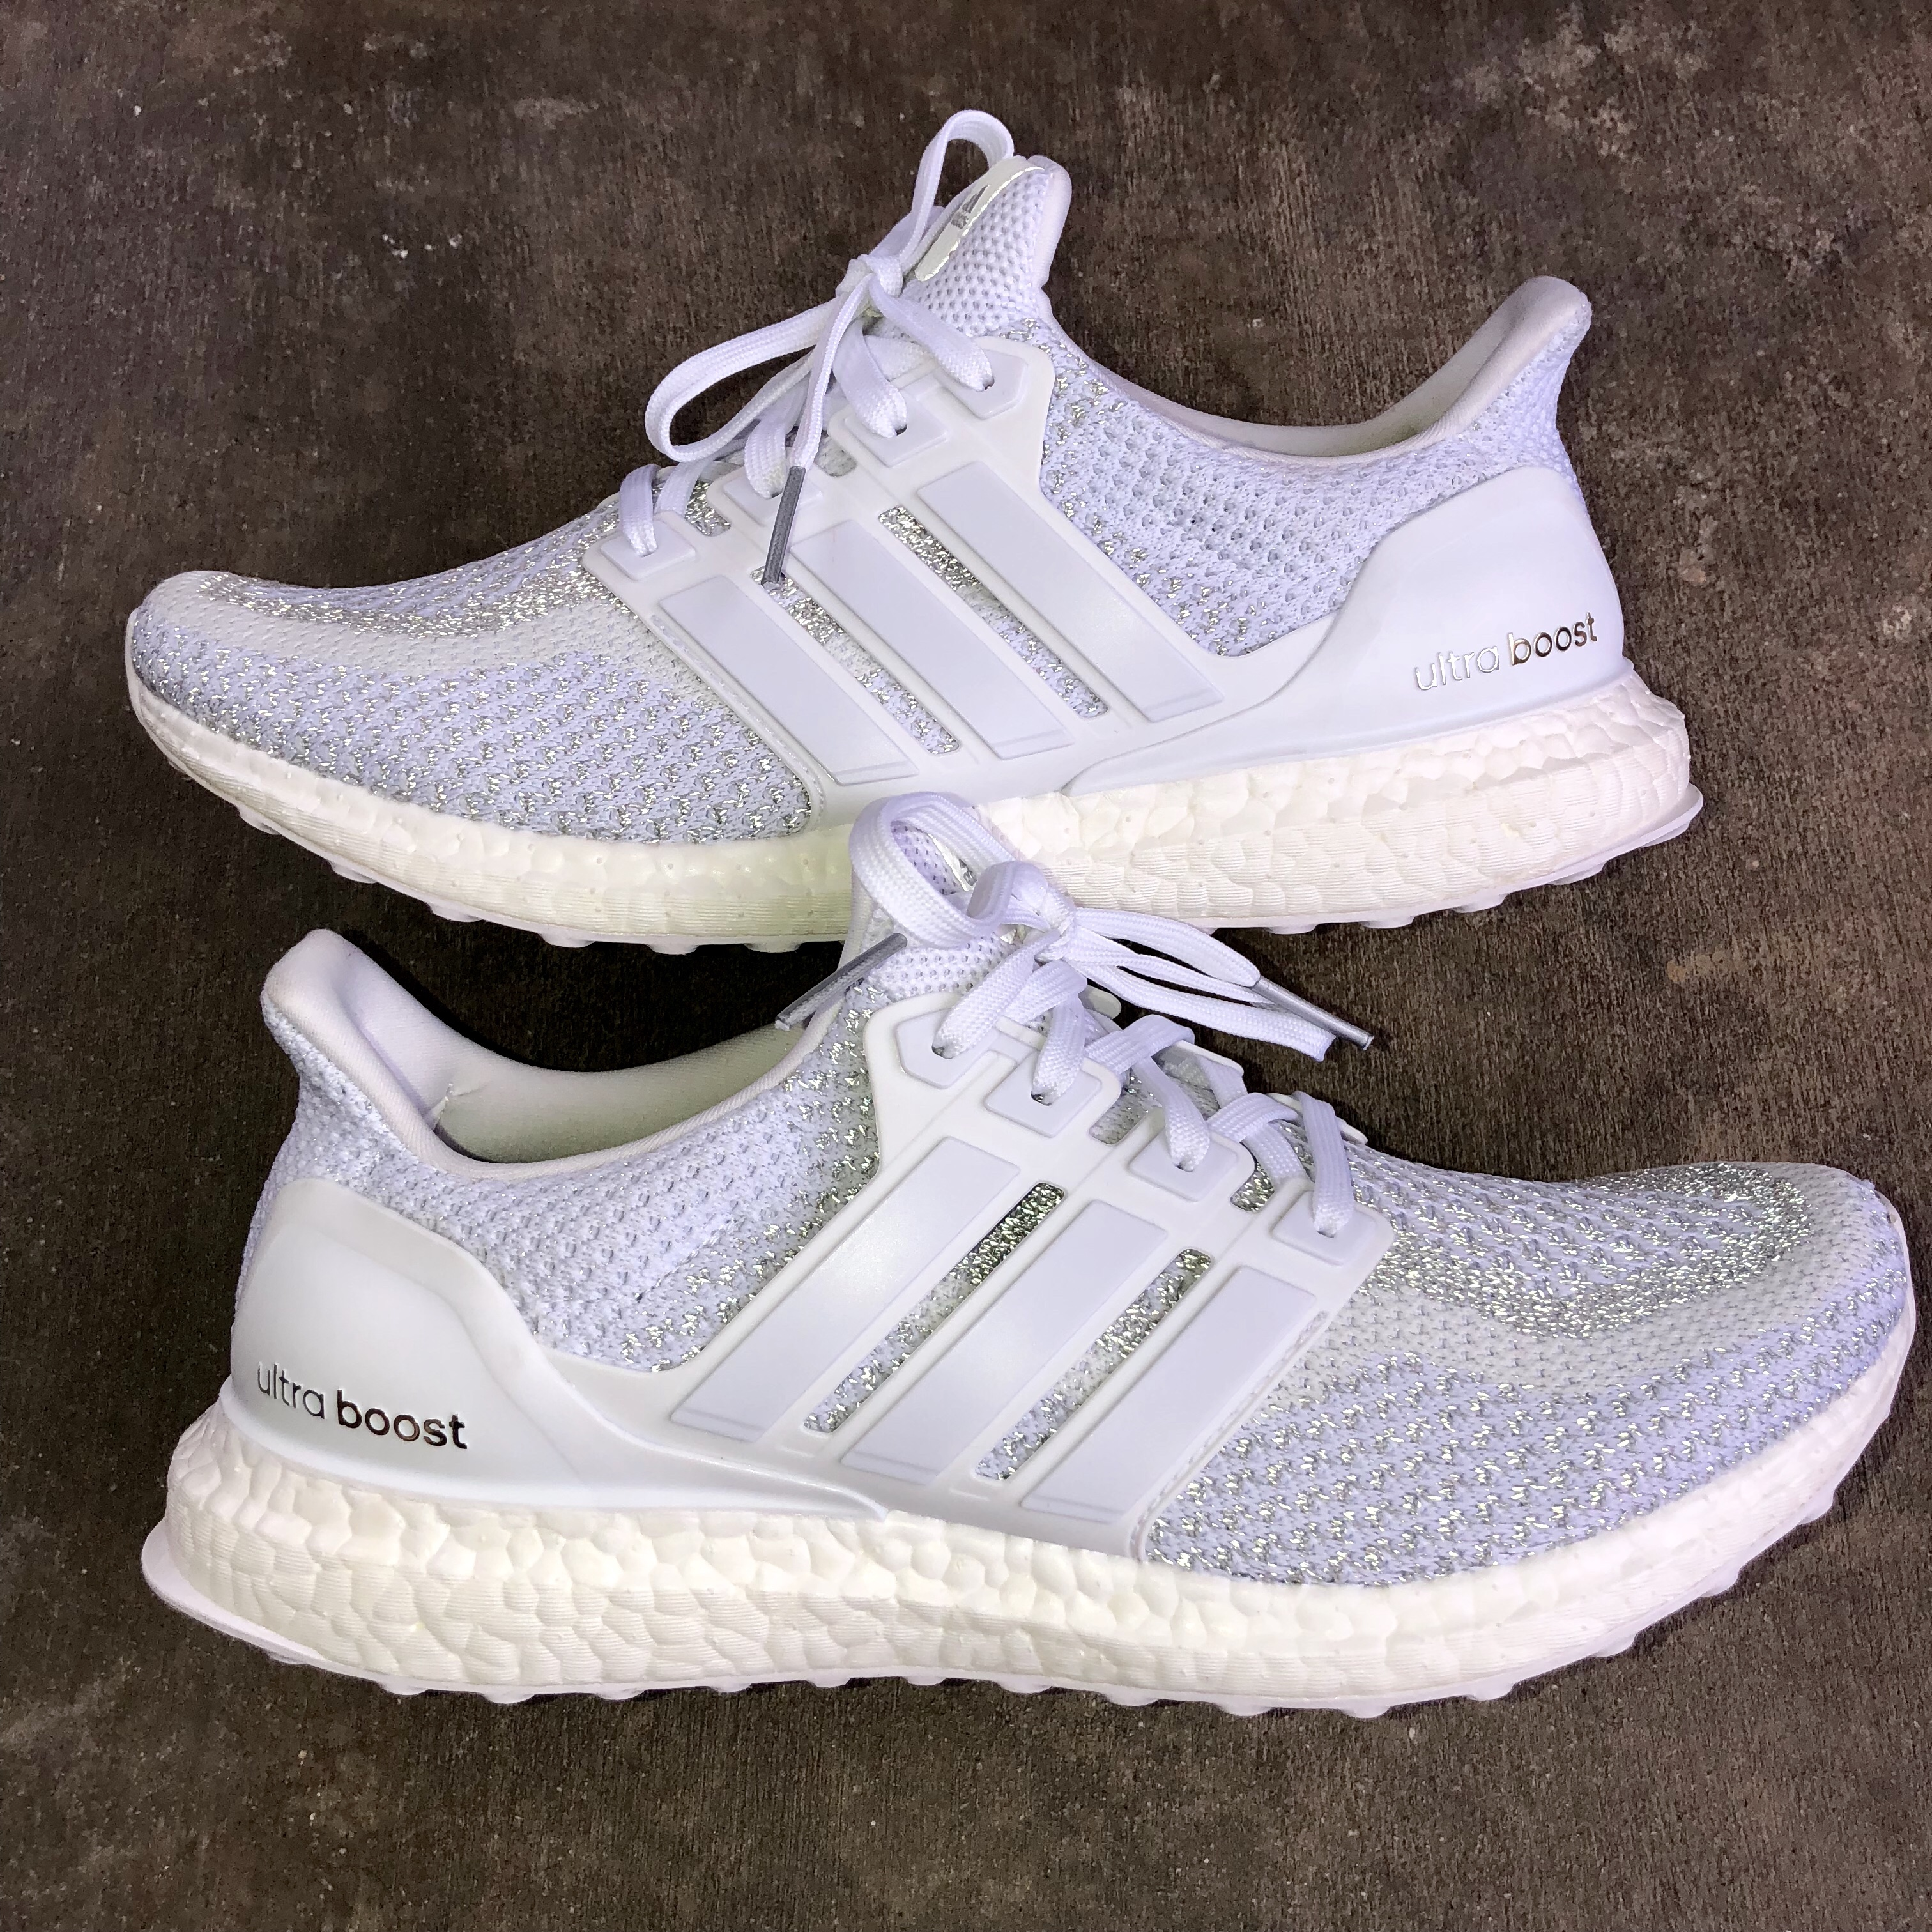 new concept 5d481 fce35 Adidas Ultra Boost 2.0 Triple White!! Only worn... - Depop